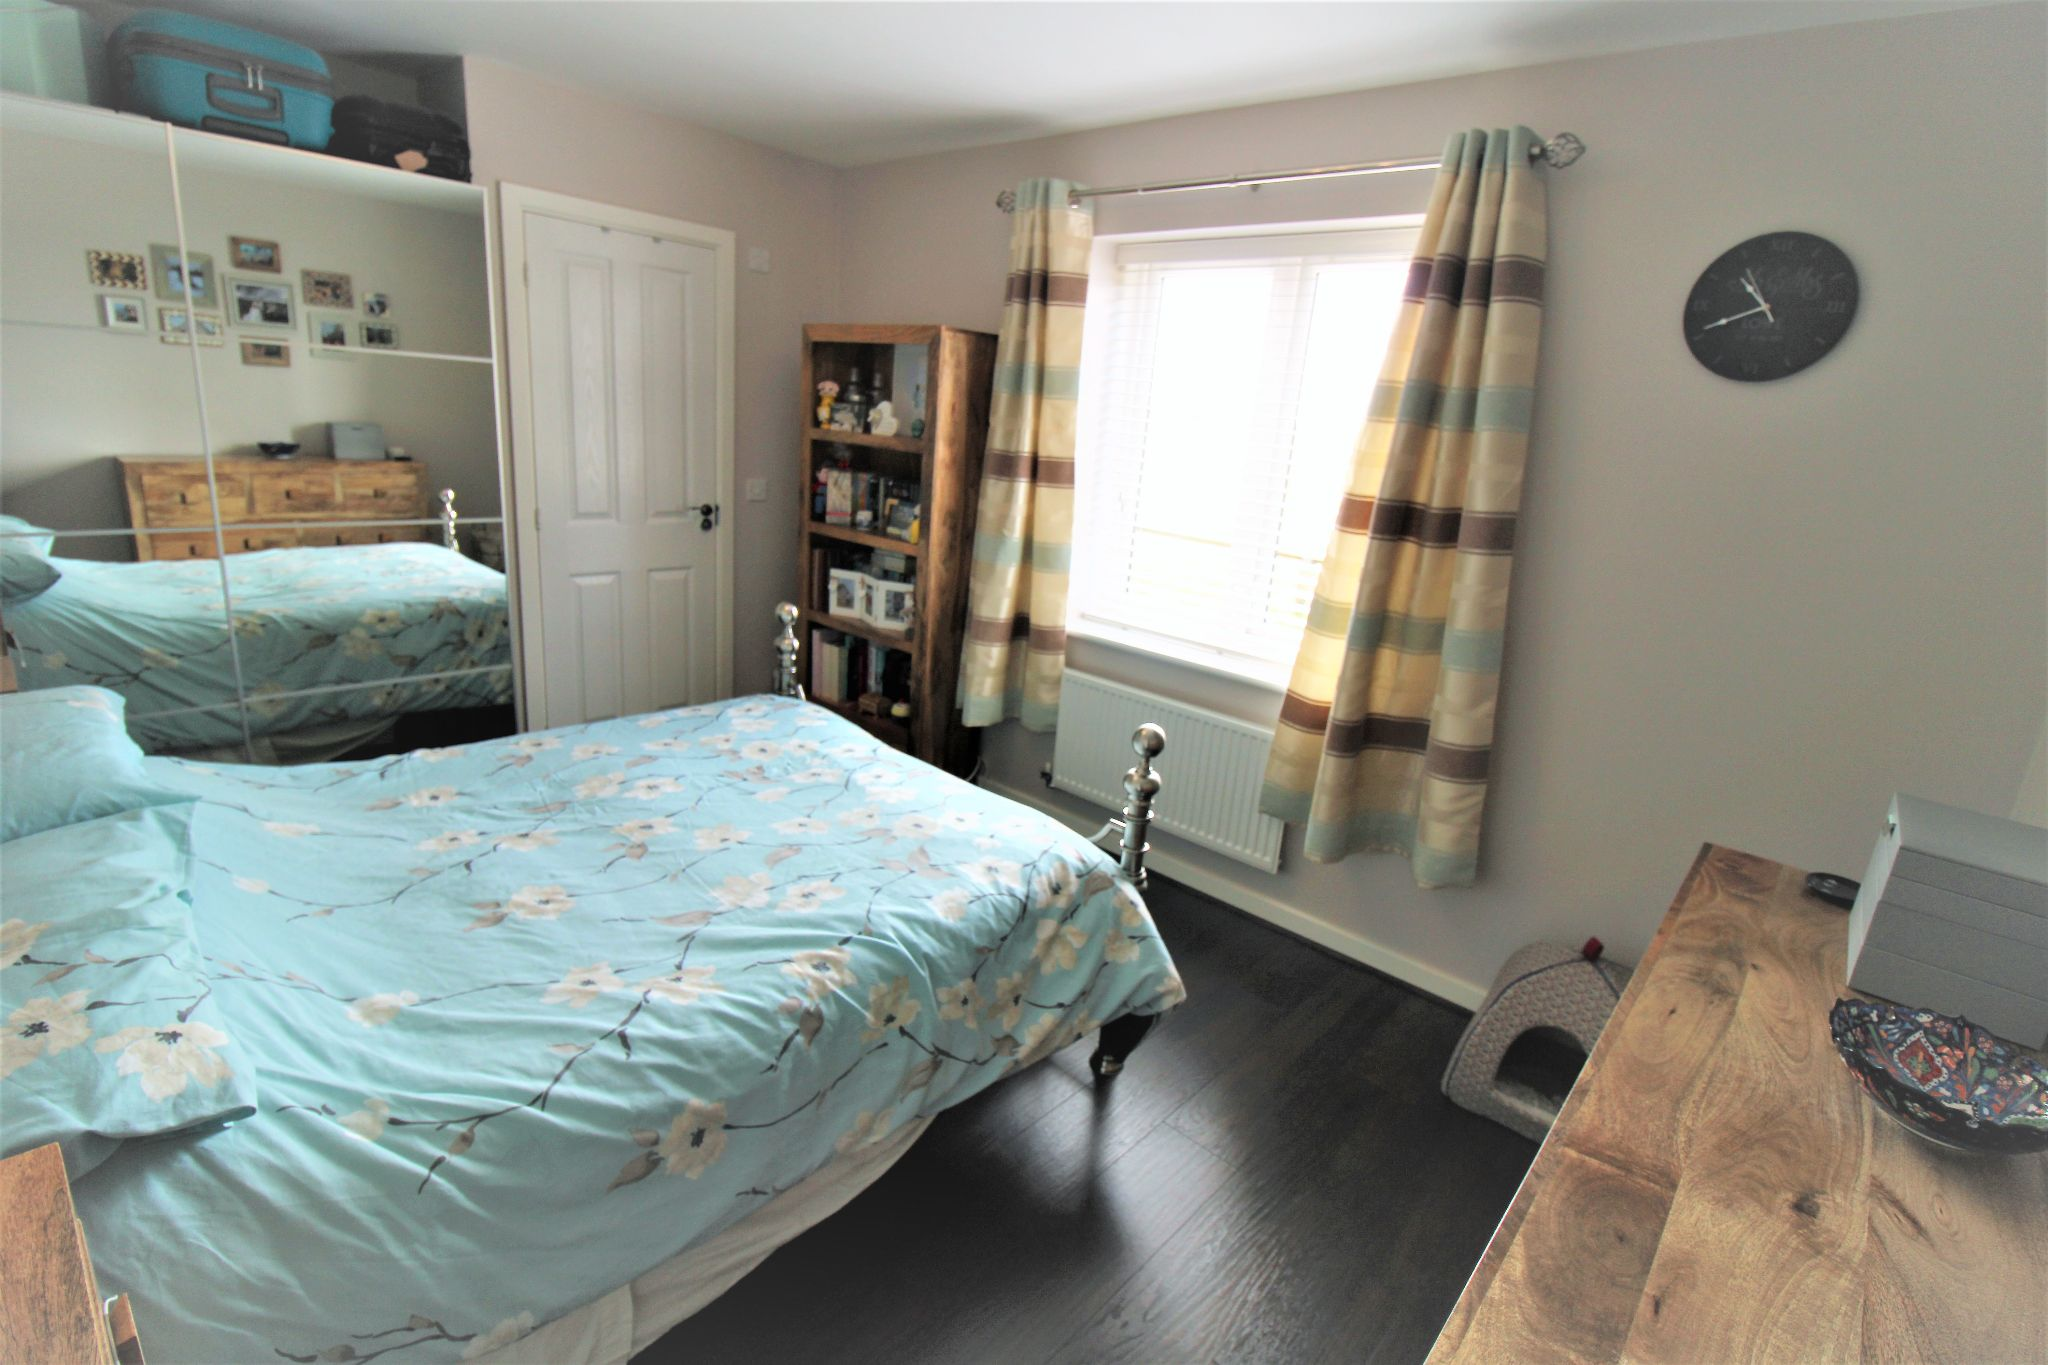 2 Bedroom Apartment Flat/apartment For Sale - Bedroom 1